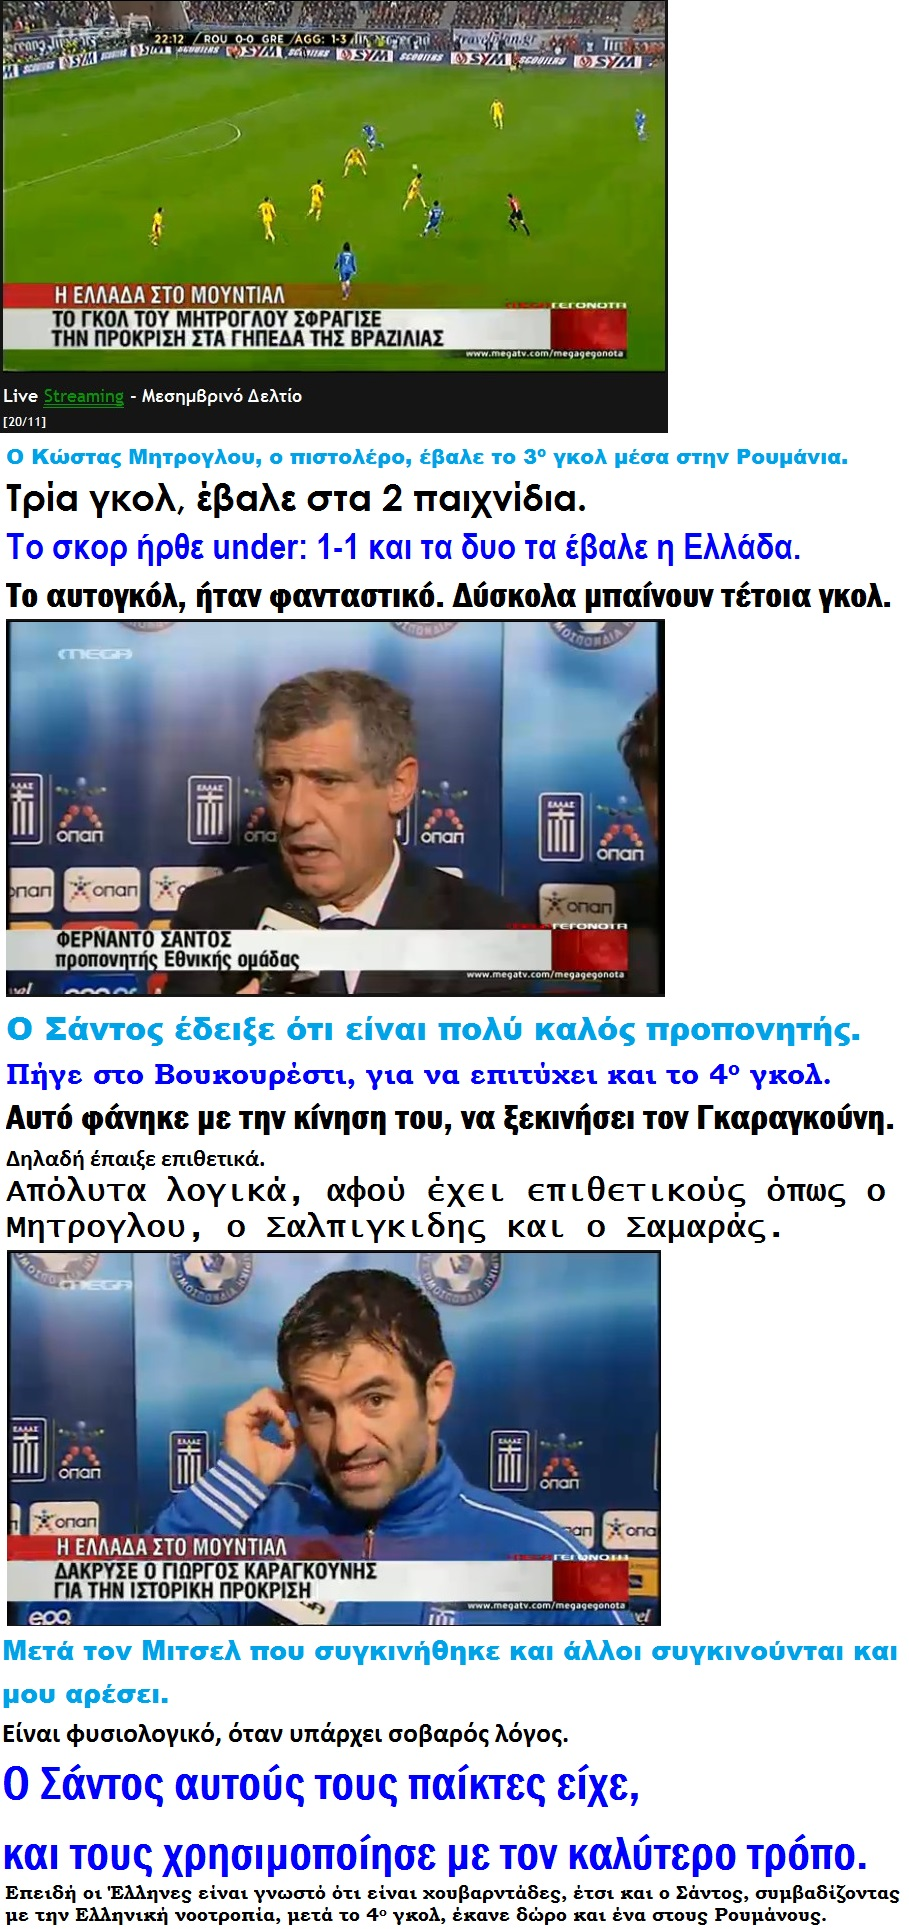 FOOTBALL GREECE PROKRISH MUNDIAL 05 201113